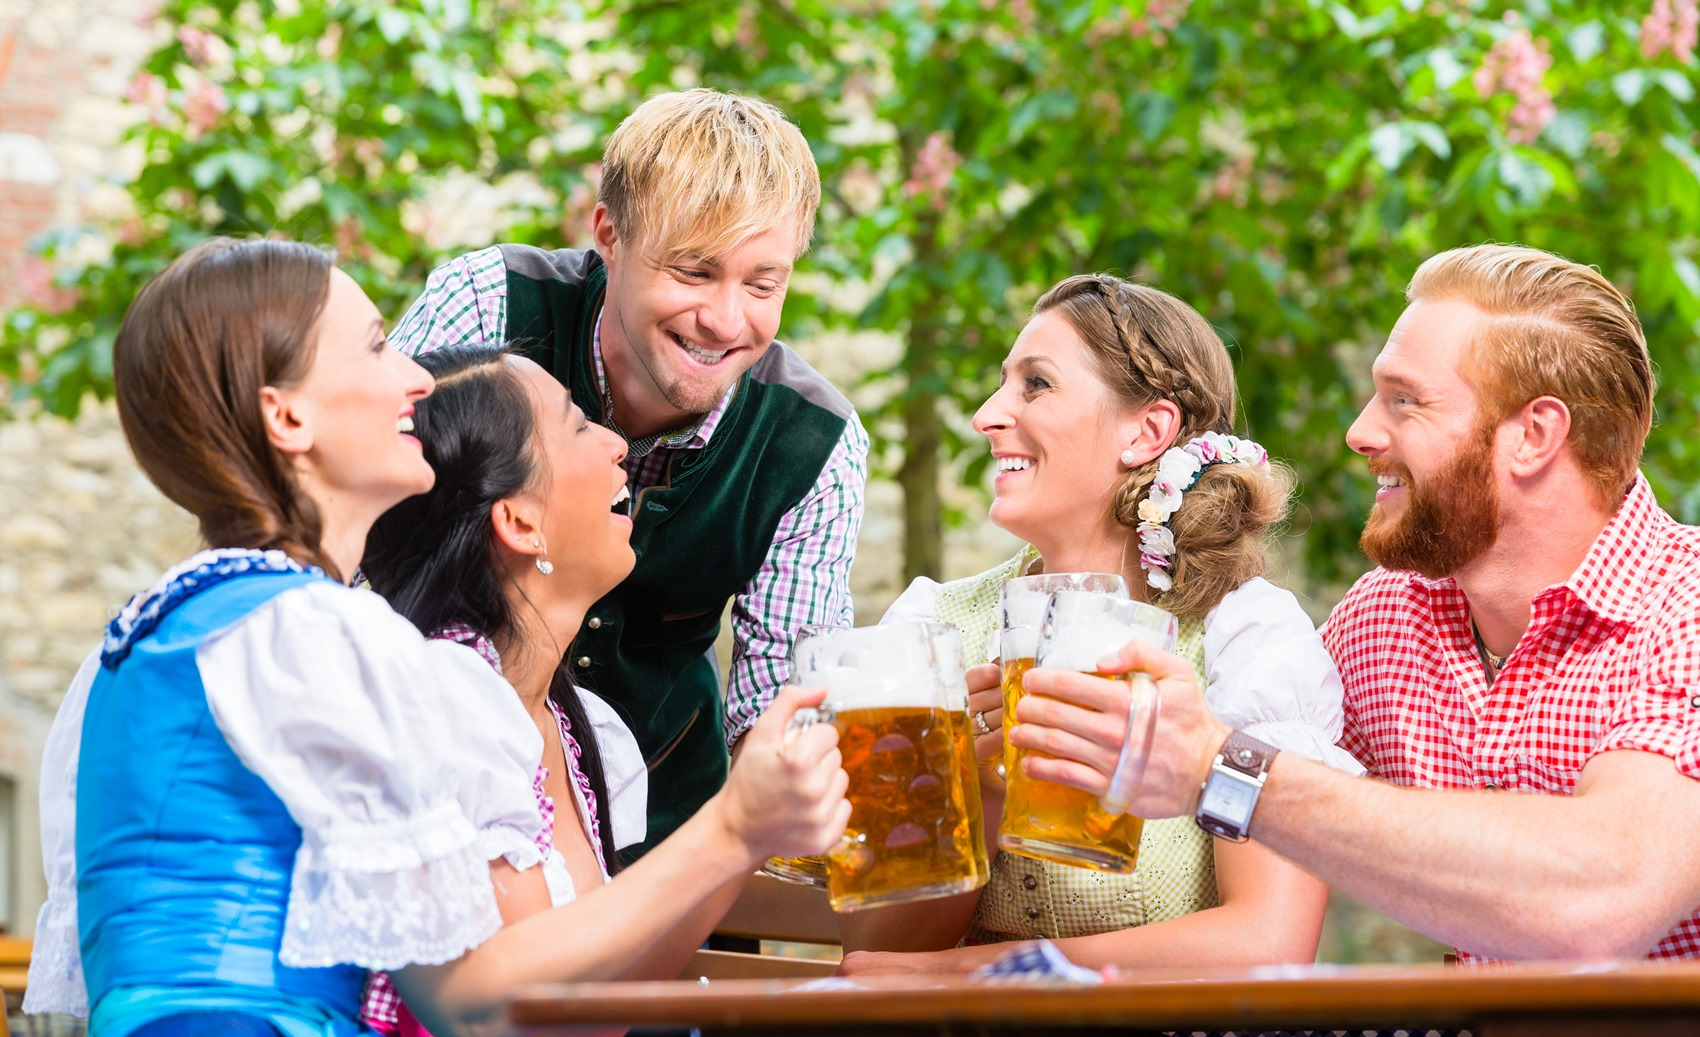 Friends clinking glasses in beer garden